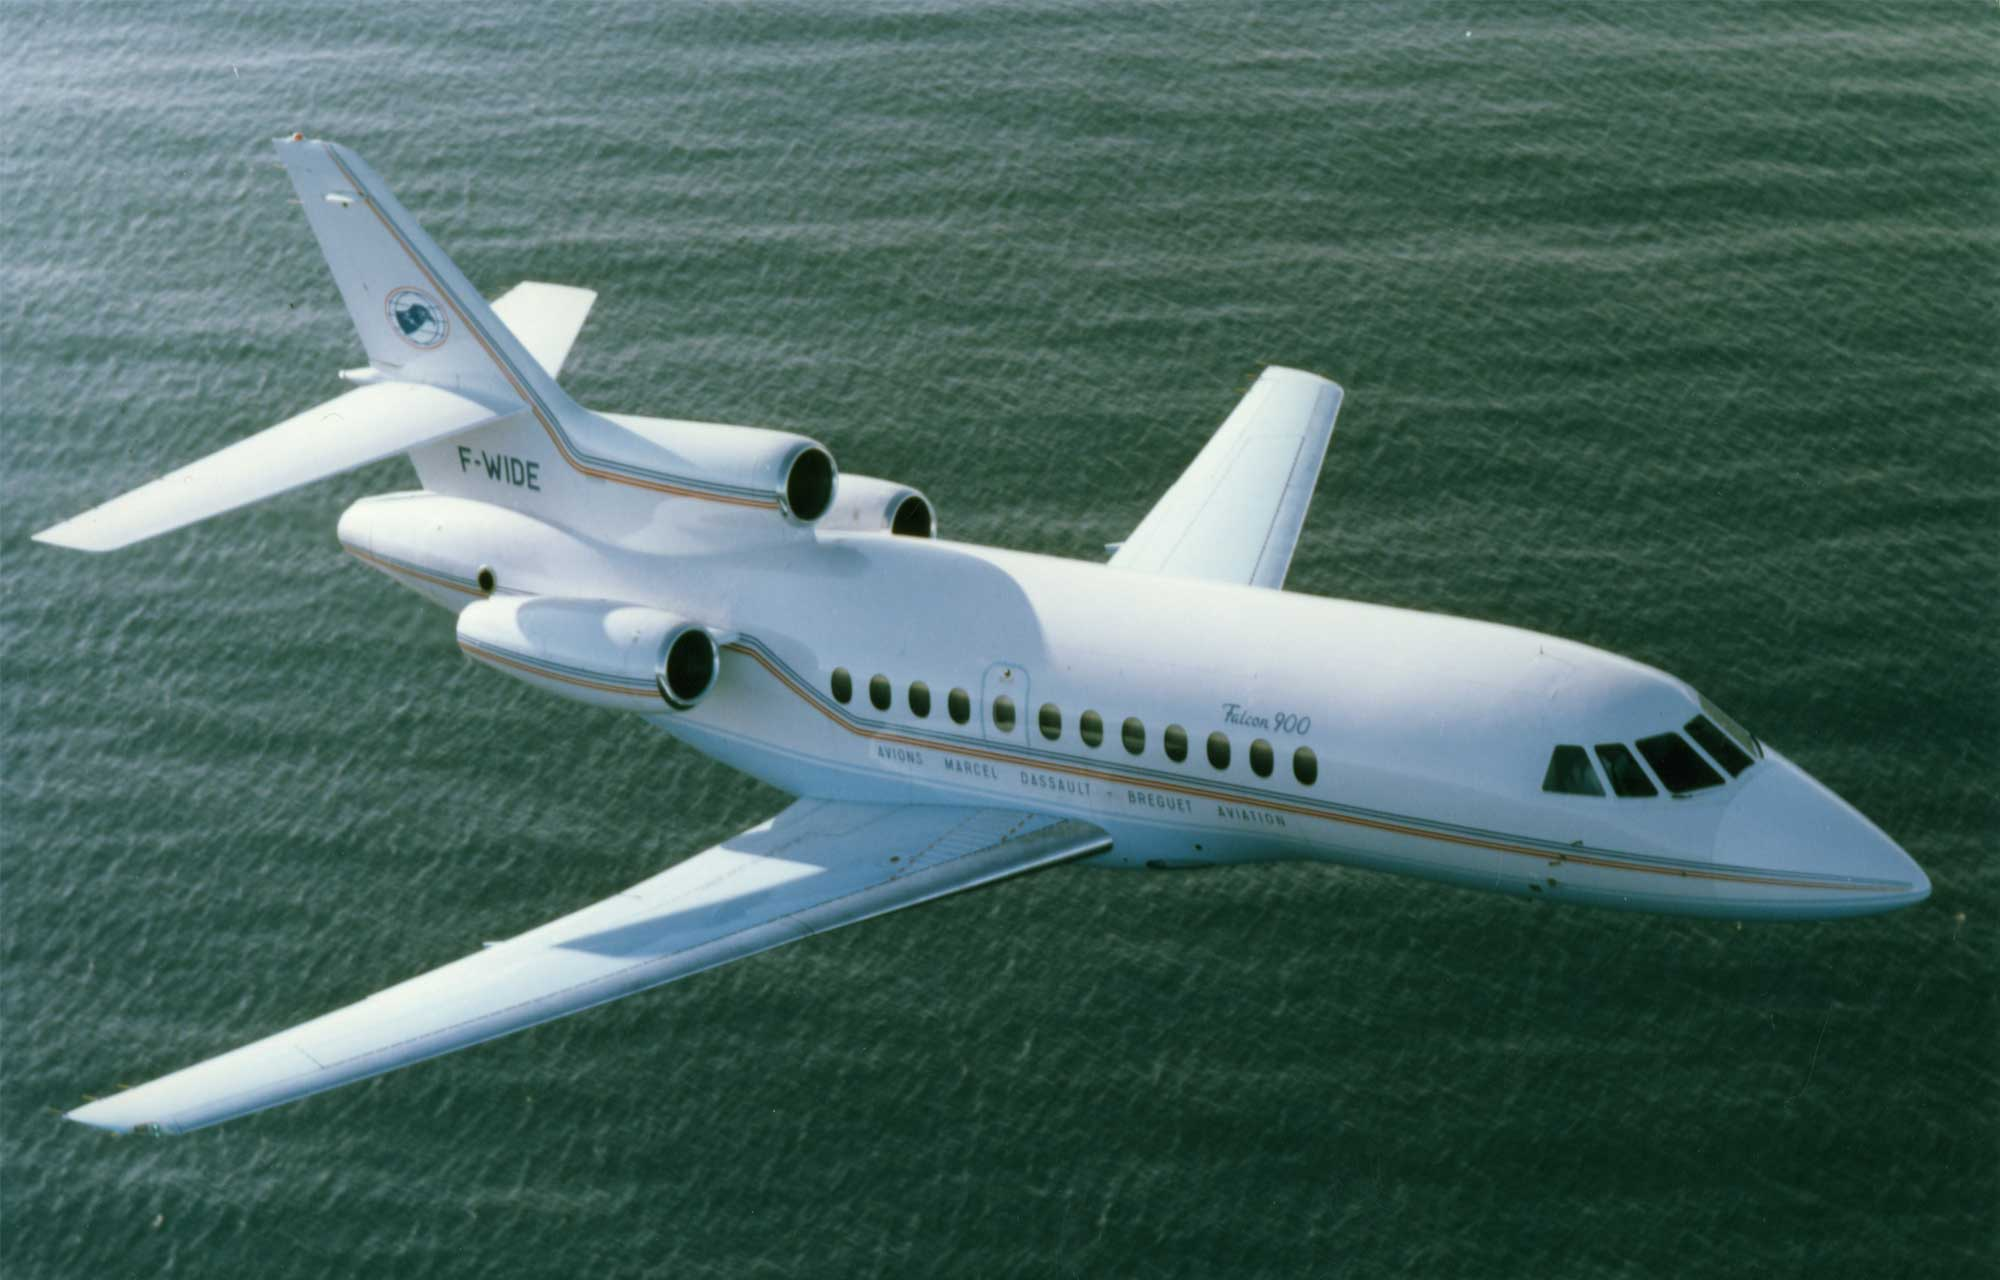 Related model: Dassault Falcon 900C